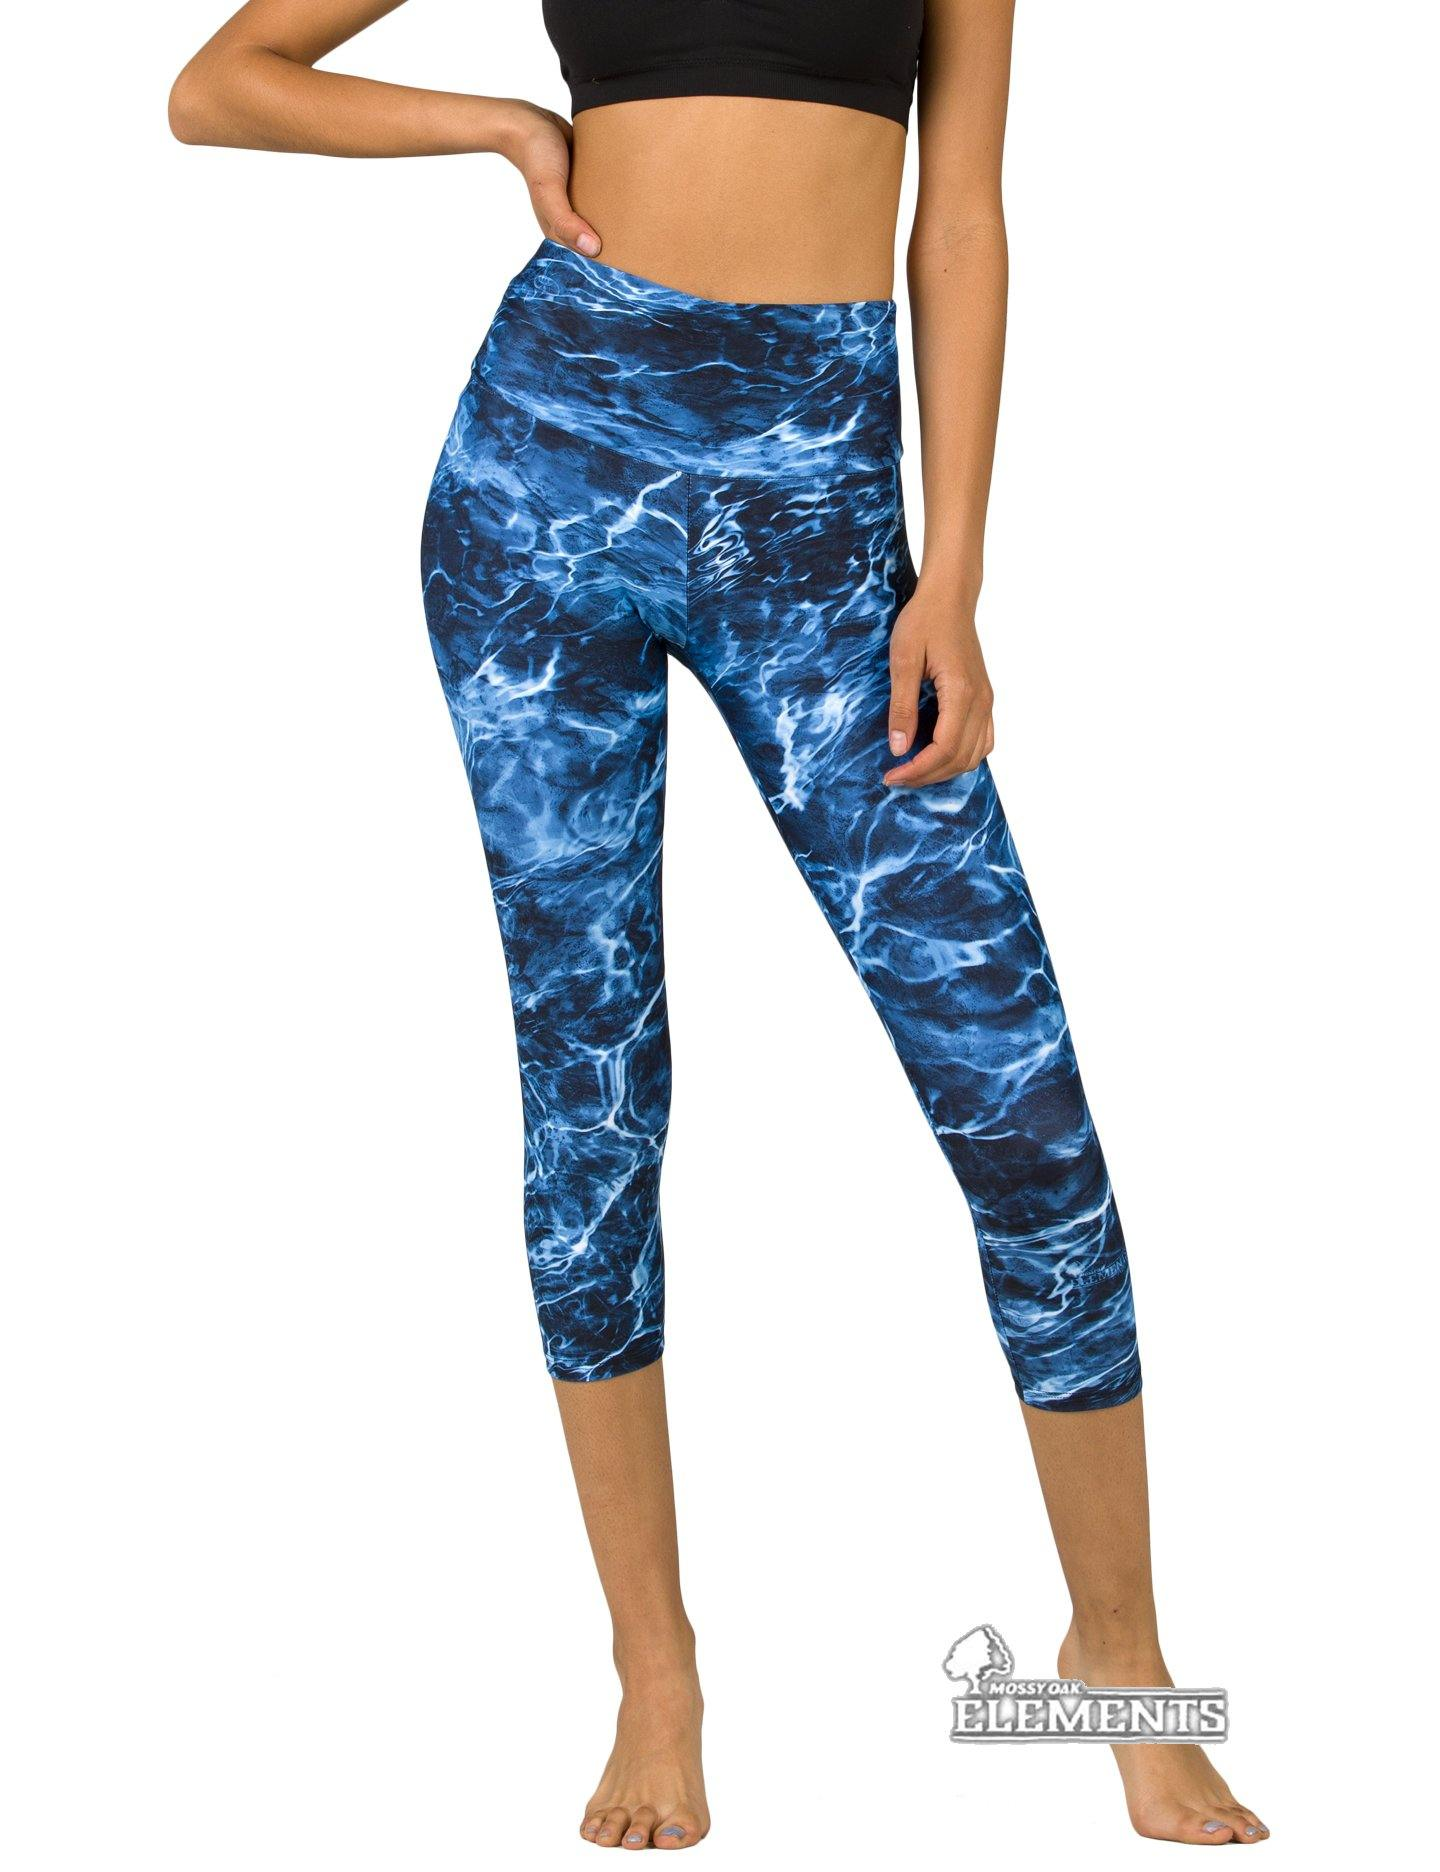 Apsara Leggings High Waist Capri, Mossy Oak Elements Marlin